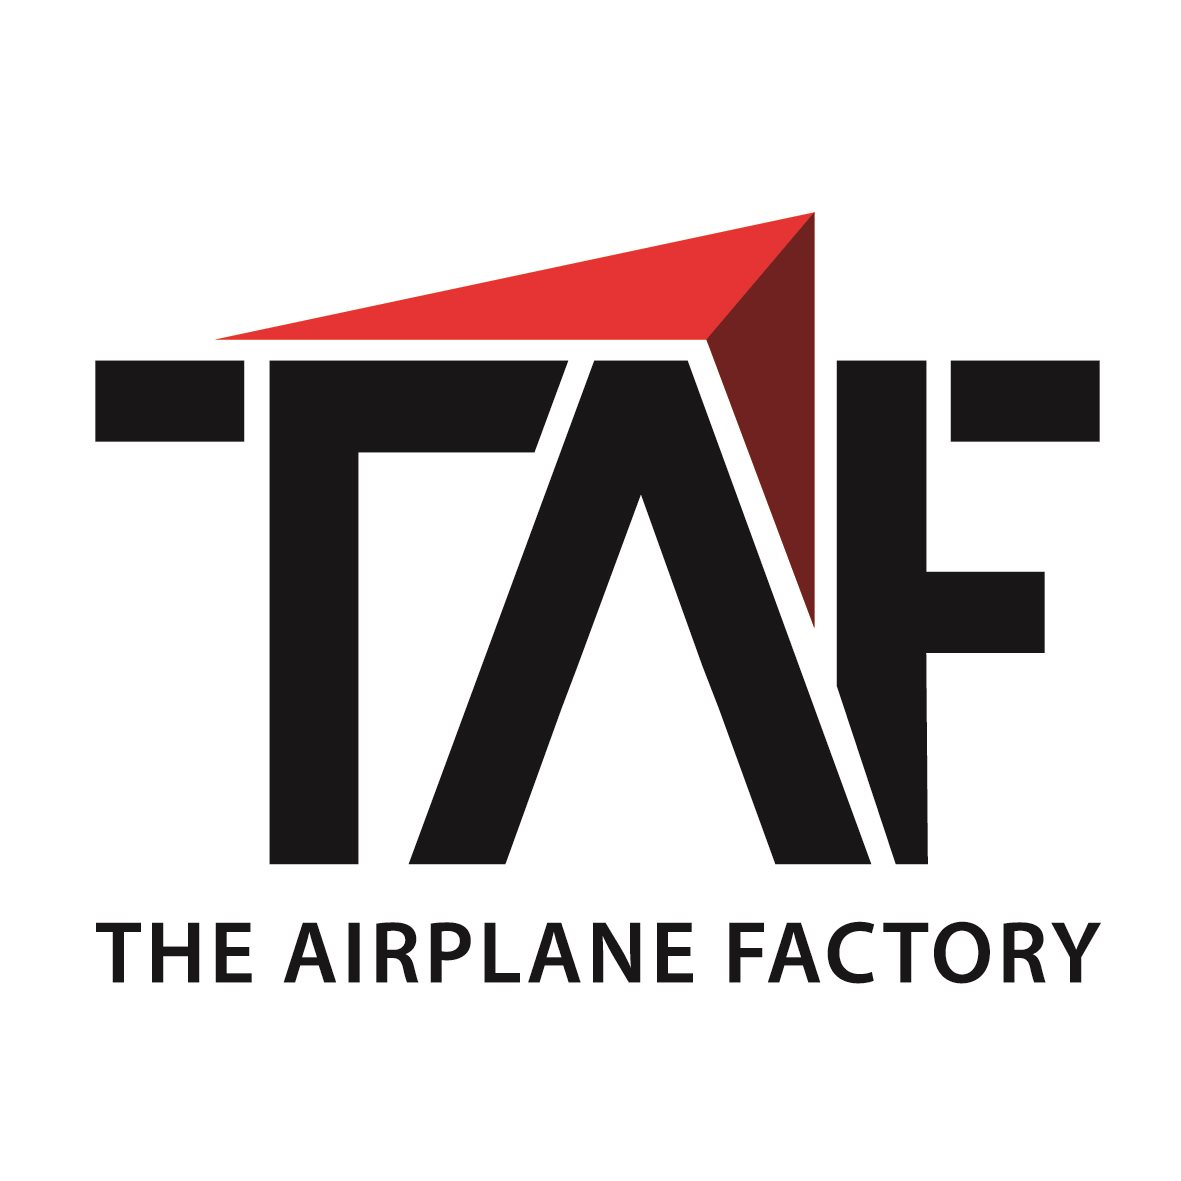 The Airplane Factory